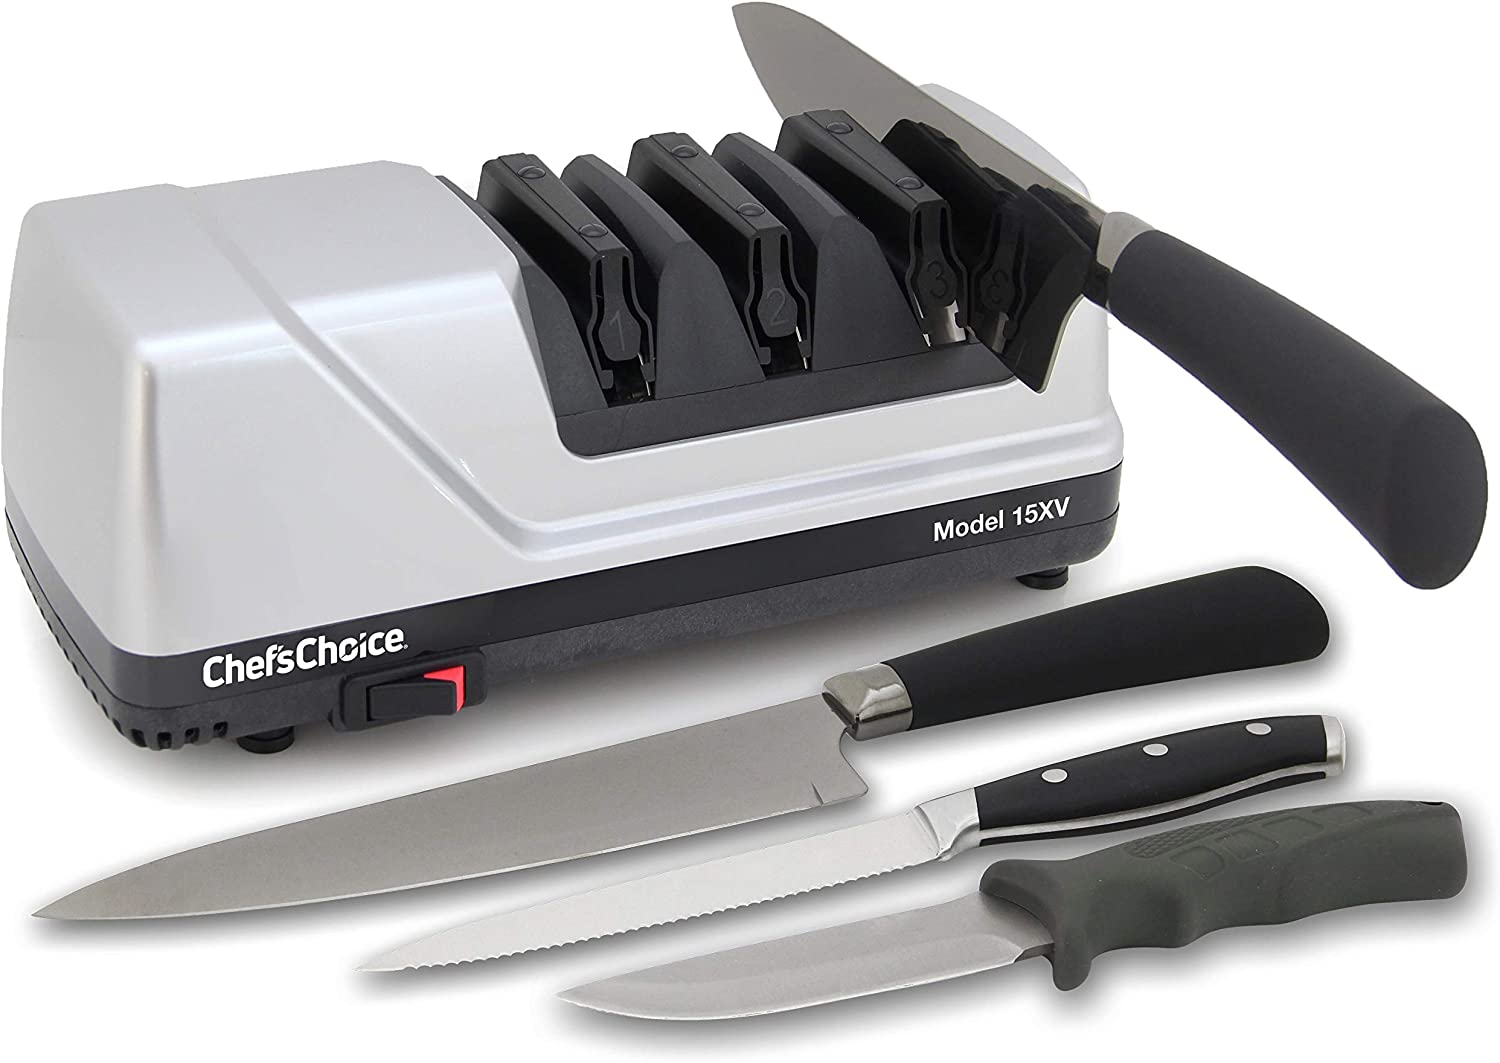 Amazon.com: ChefsChoice 15 Trizor XV EdgeSelect afilador de ...